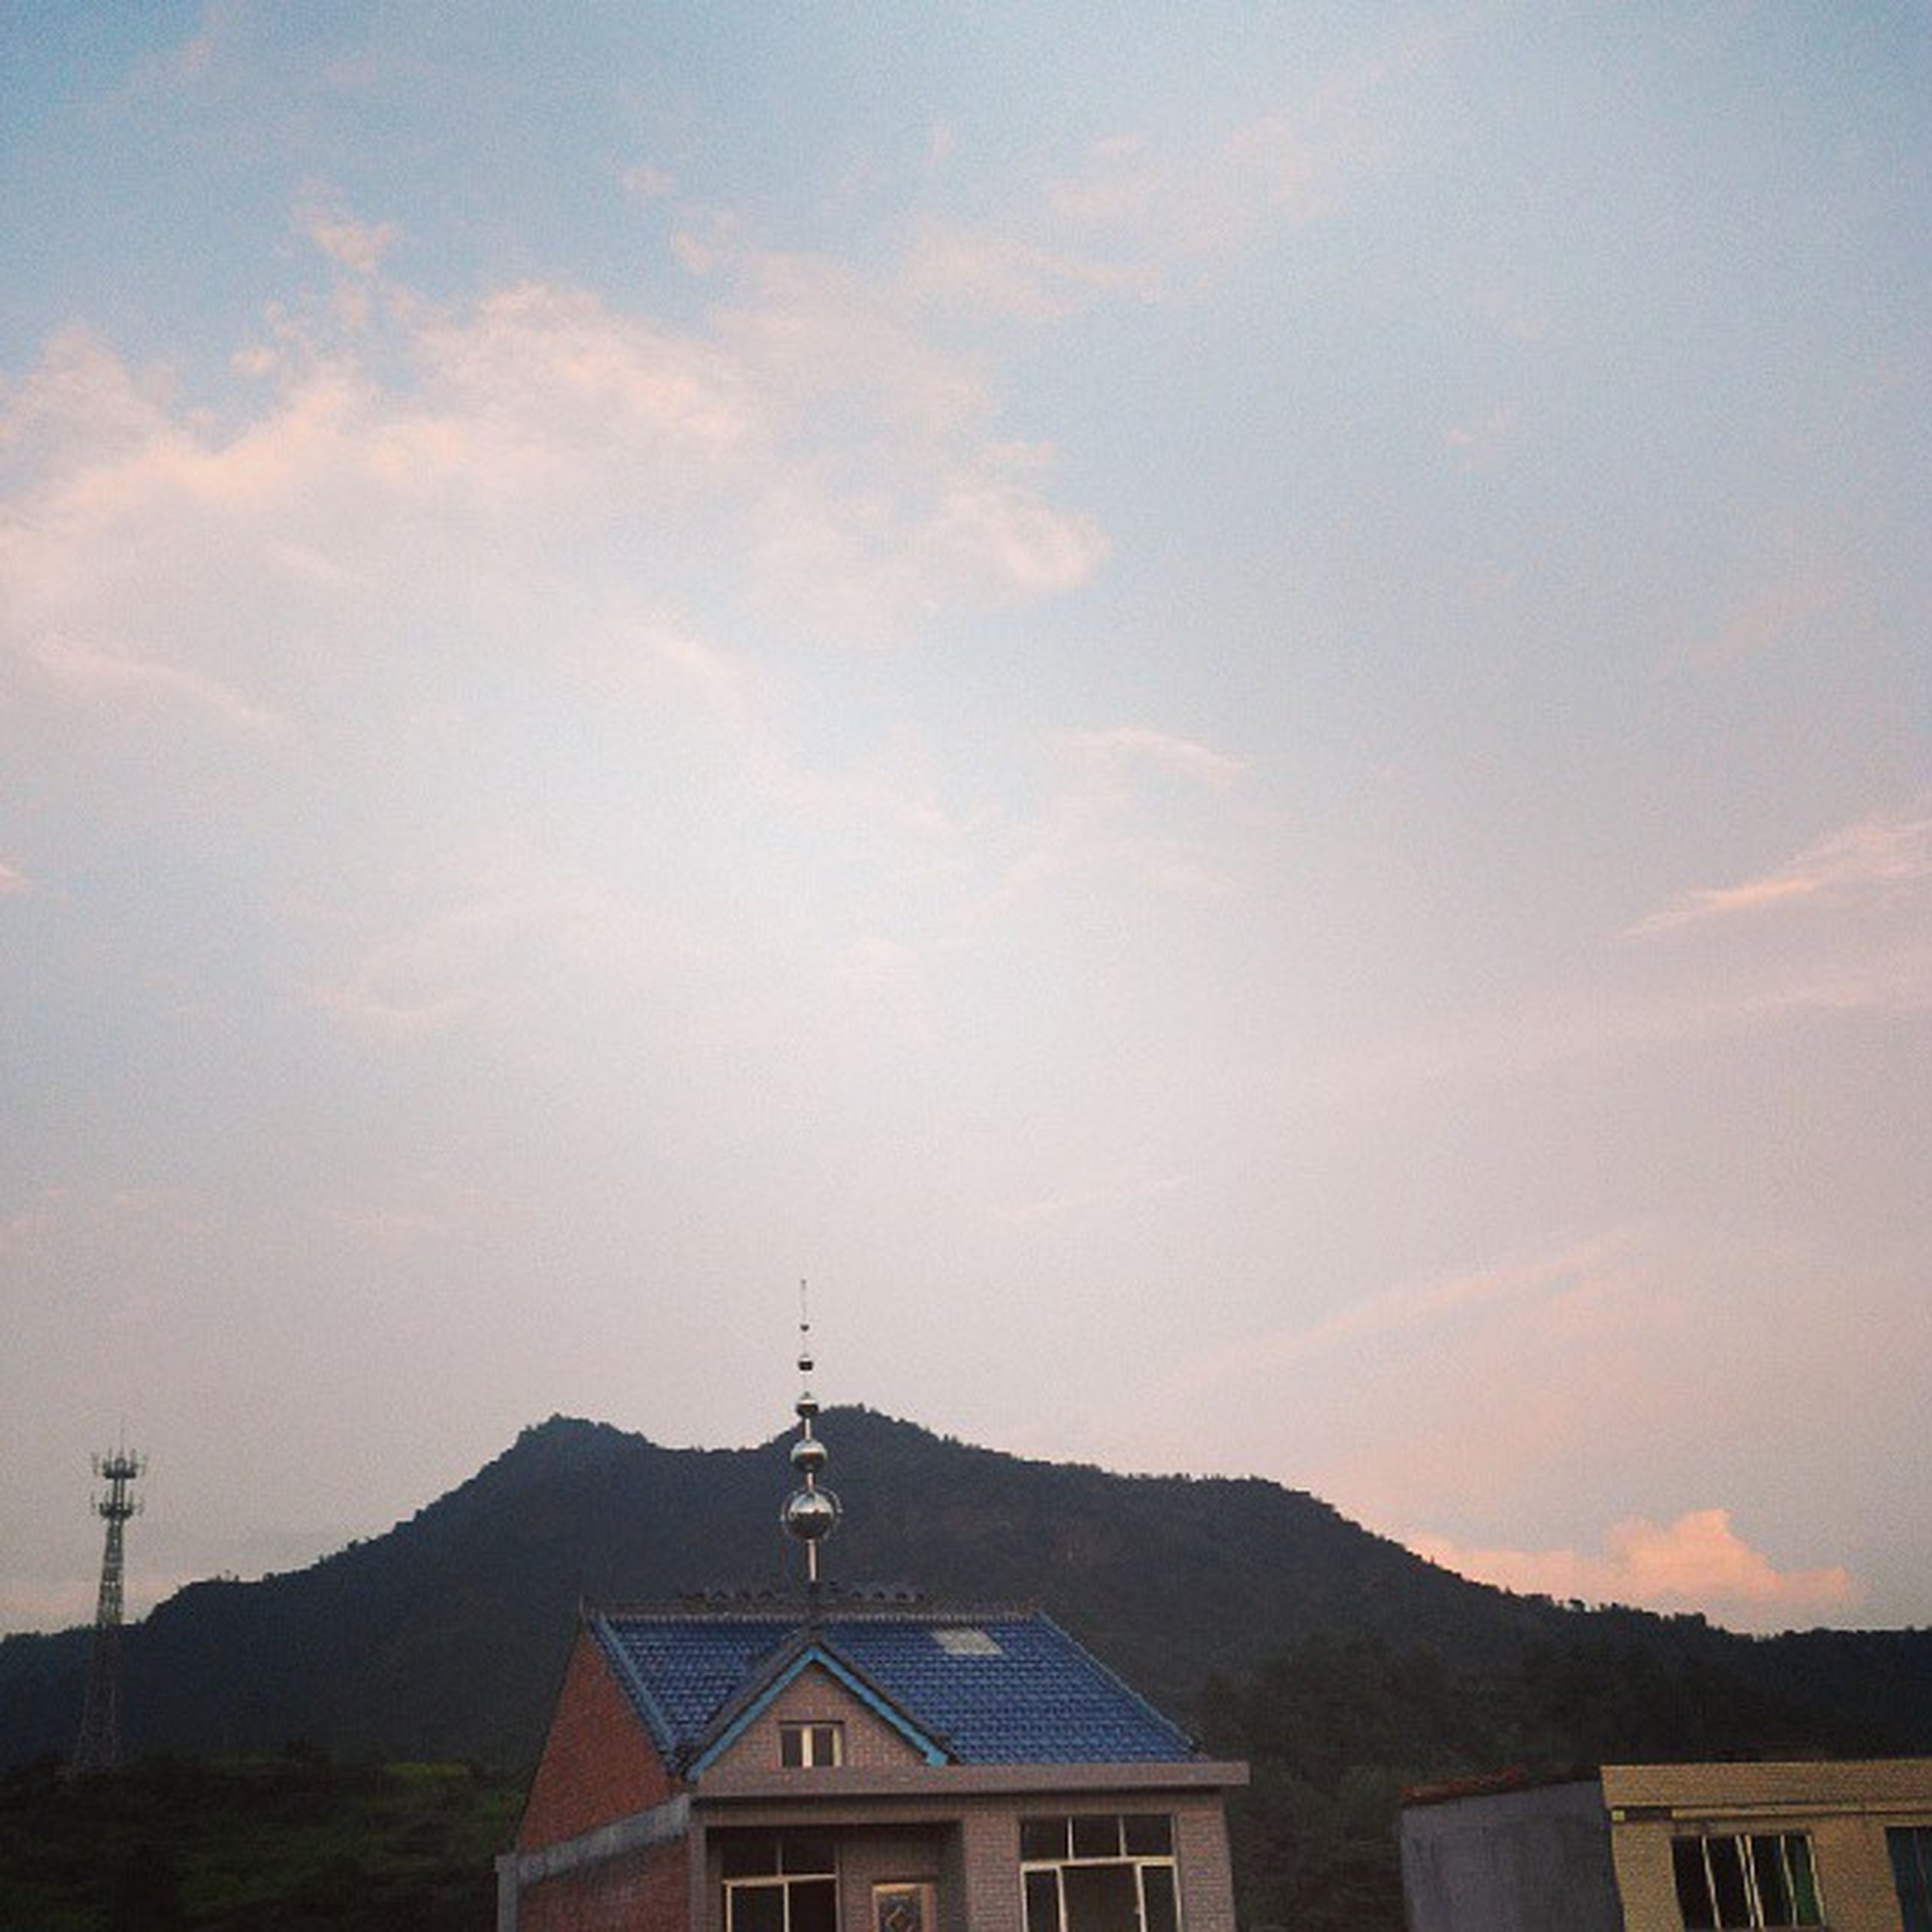 building exterior, architecture, built structure, mountain, sky, house, mountain range, religion, church, spirituality, cloud - sky, roof, place of worship, high section, scenics, beauty in nature, residential structure, low angle view, town